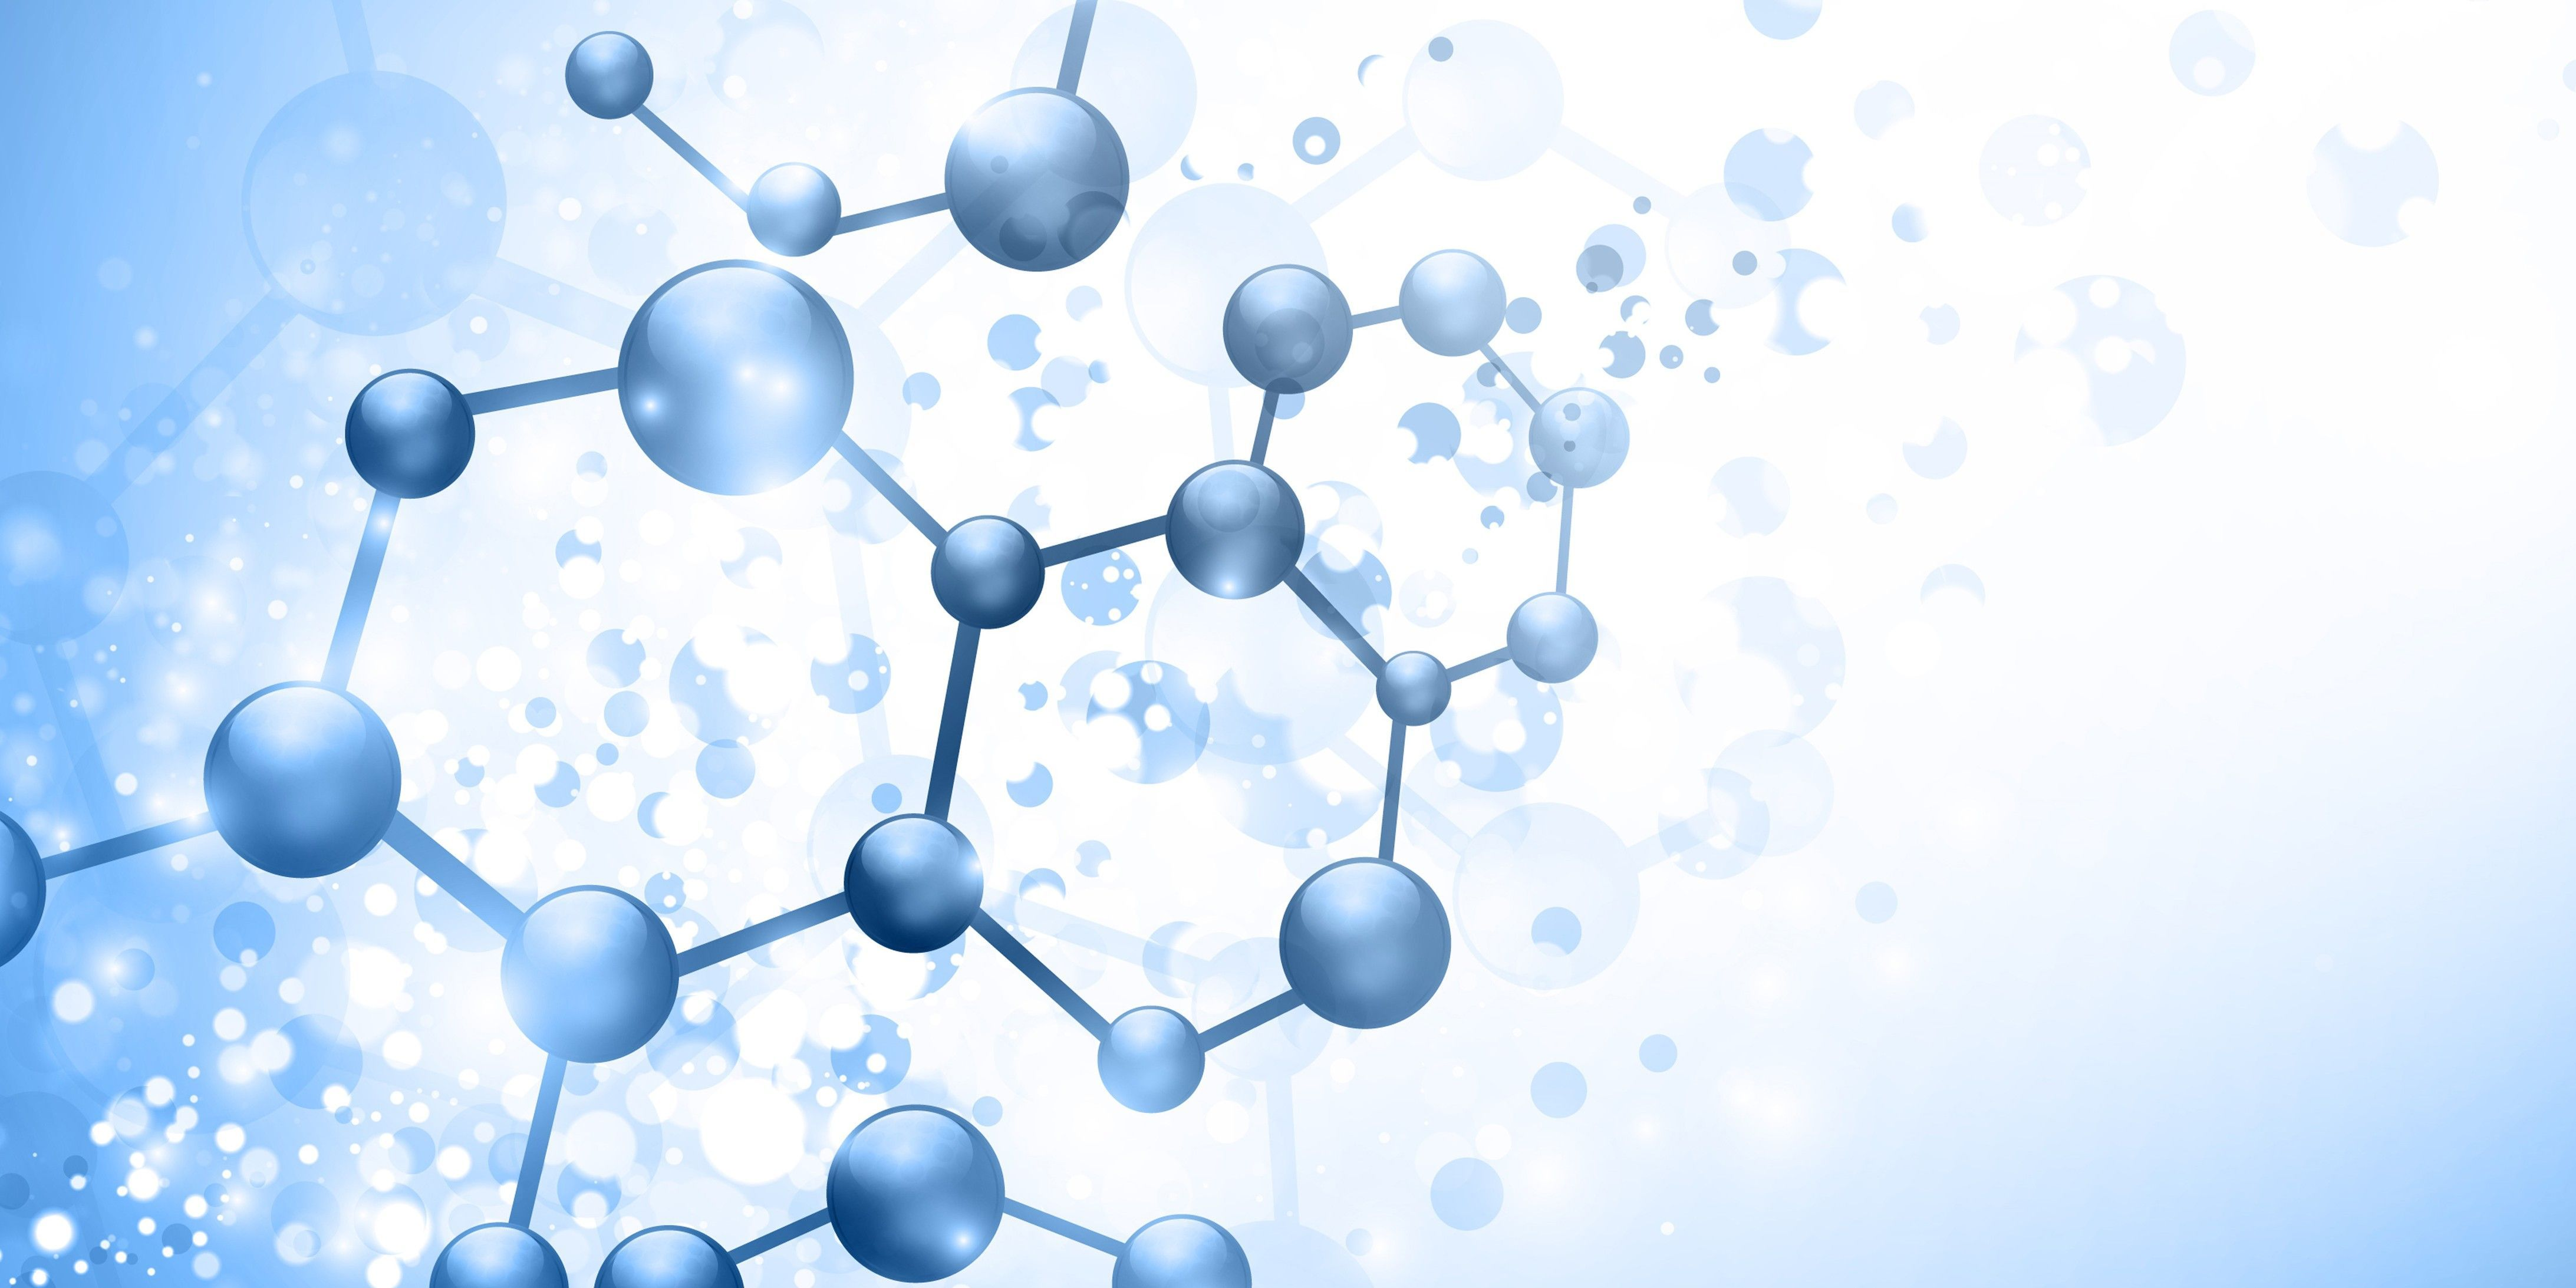 Download This Awesome Wallpaper Blue Backgrounds Chemistry Mural Wallpaper